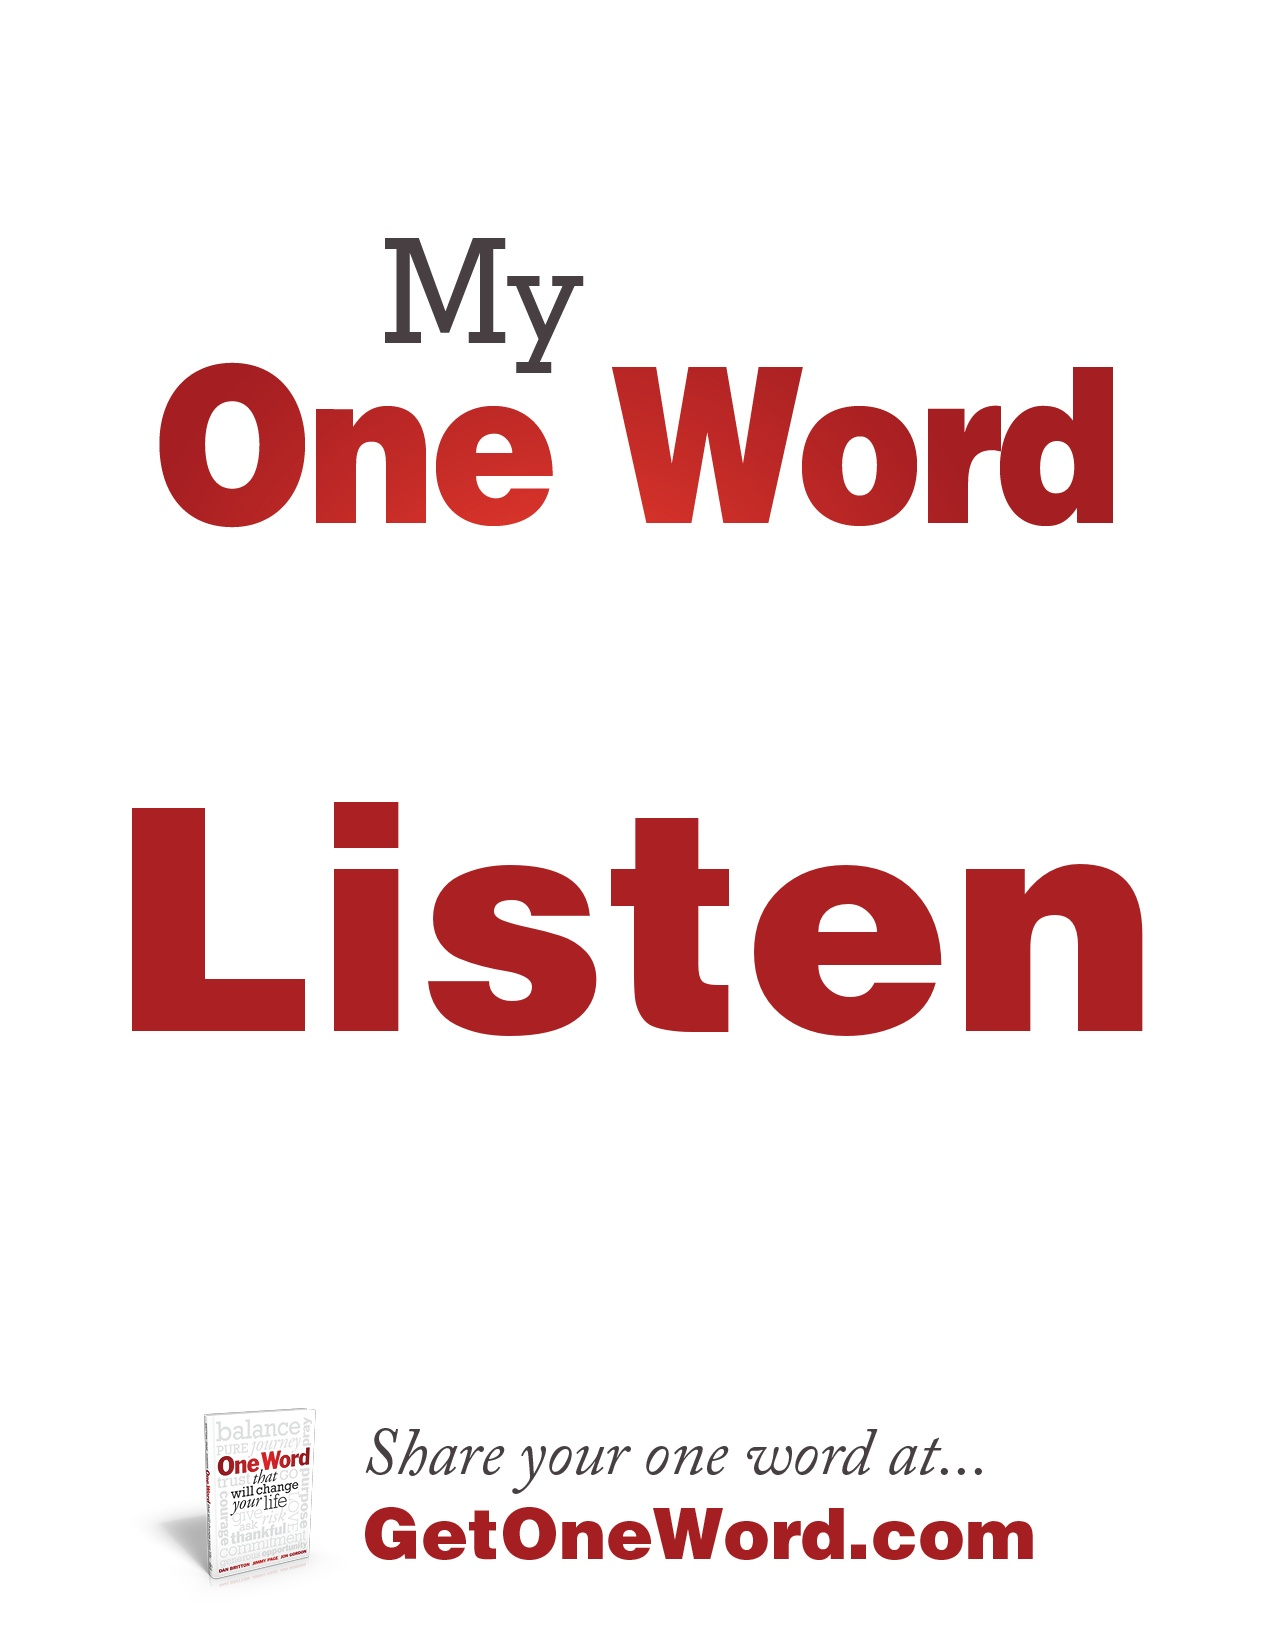 My one word…